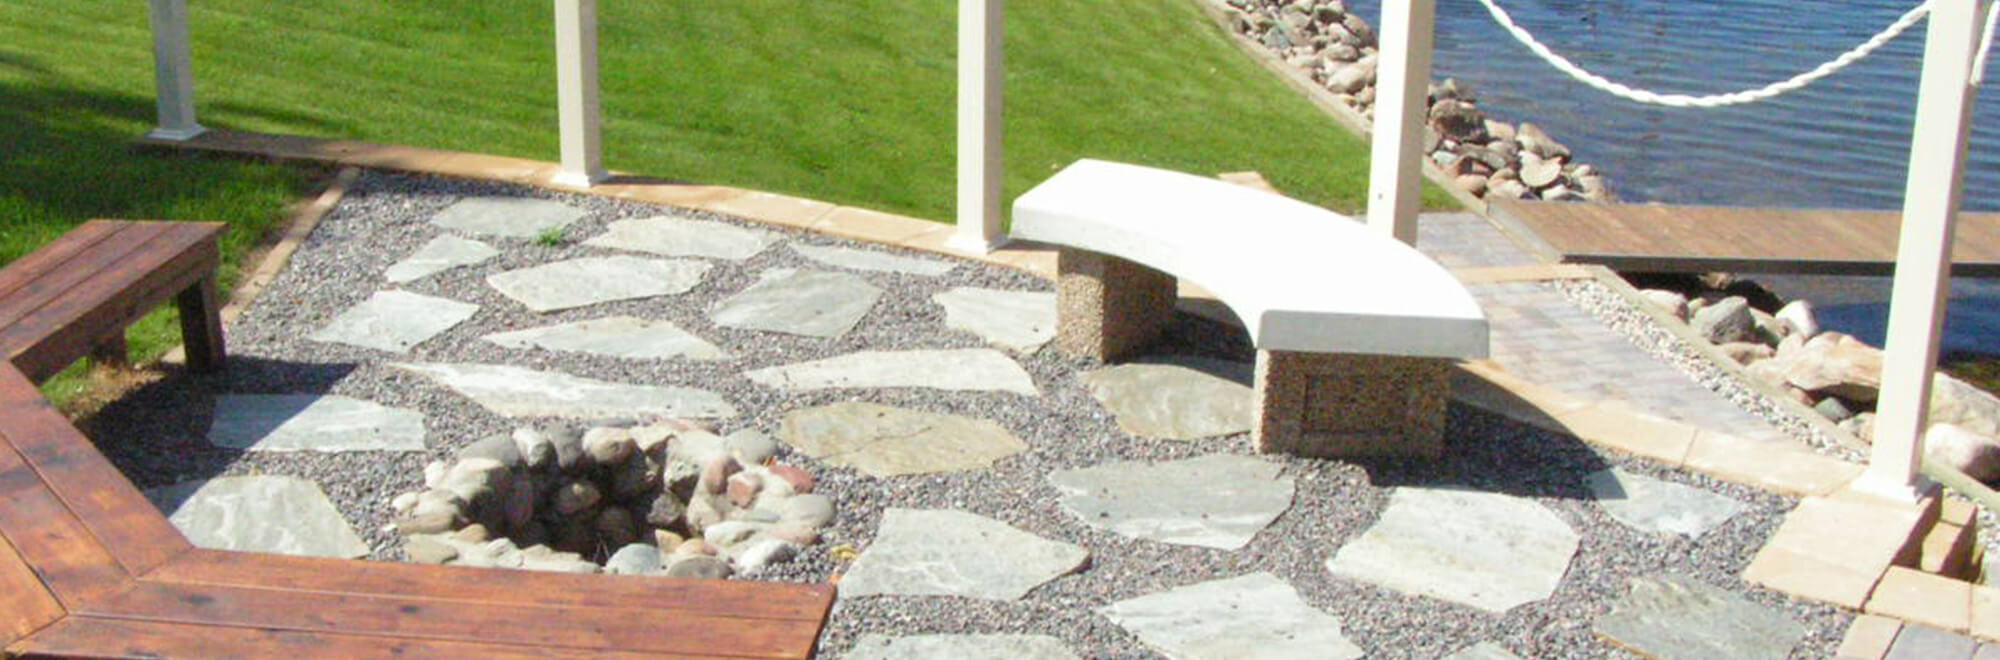 Stone patio areat with curved seating benches around an in-ground fire pit